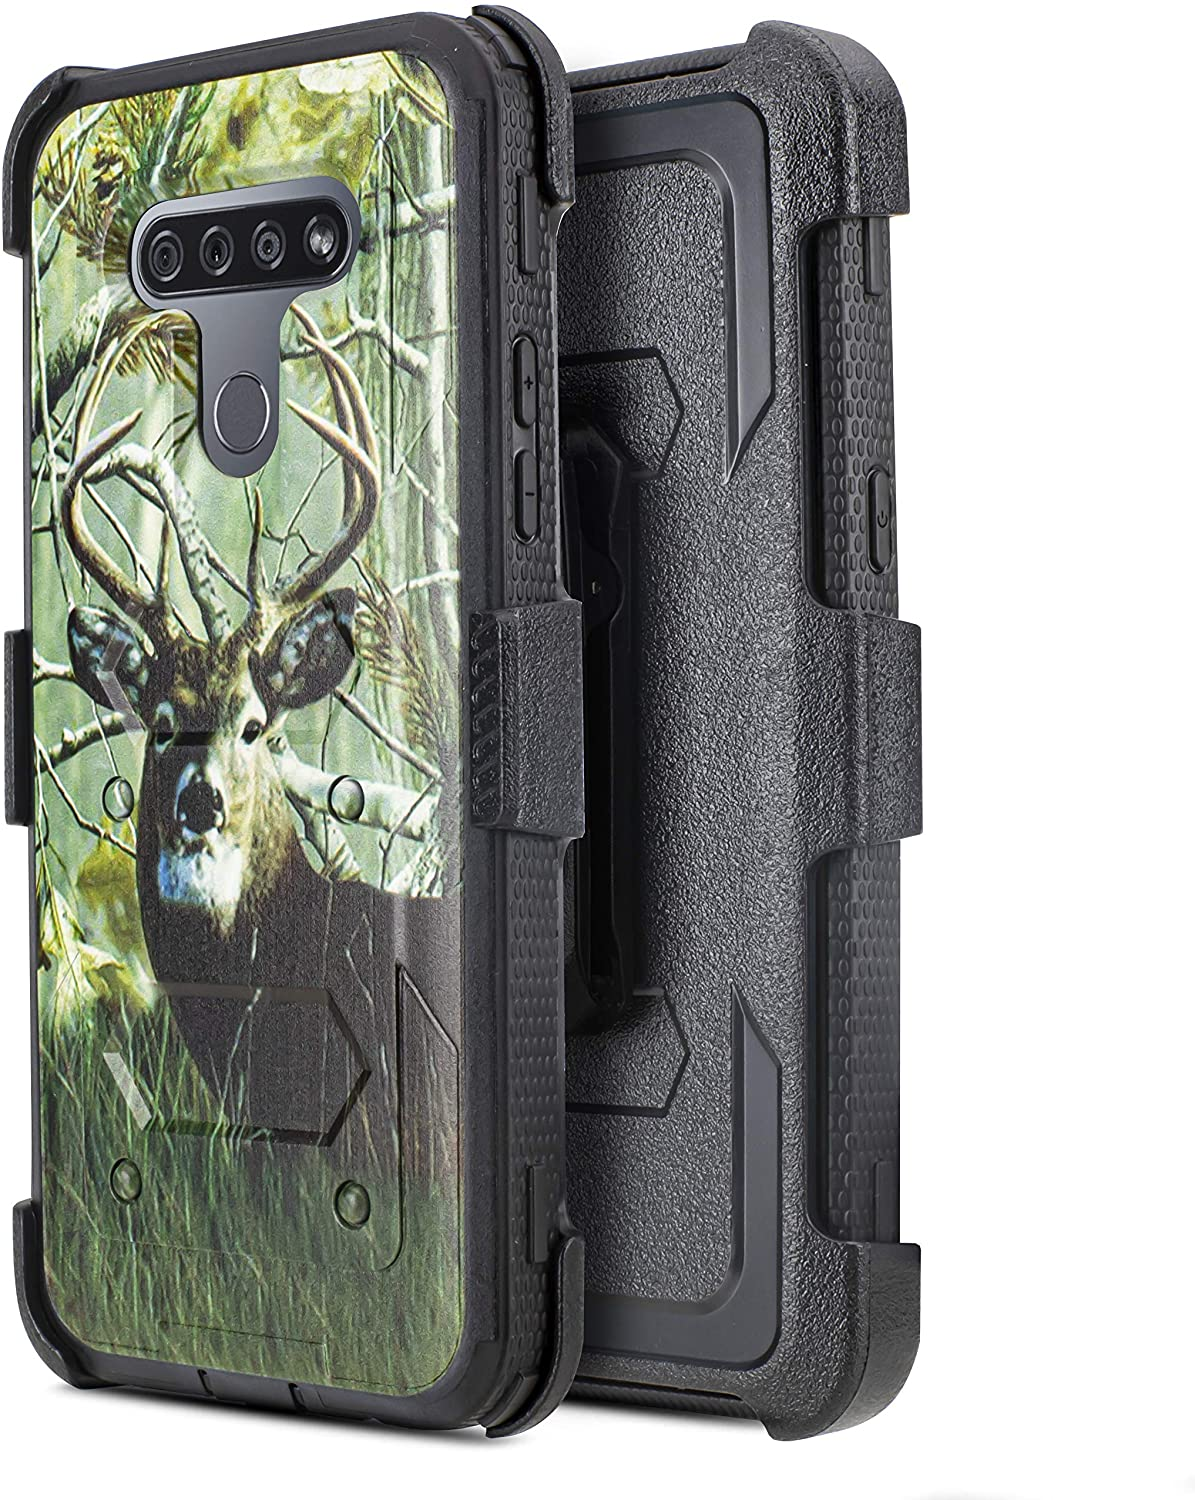 Customerfirst LG K51 Case with Belt Clip Holster Cell Phone Case [Built-in Screen Protector] Protective Armor Holster [Kickstand] (Deer)